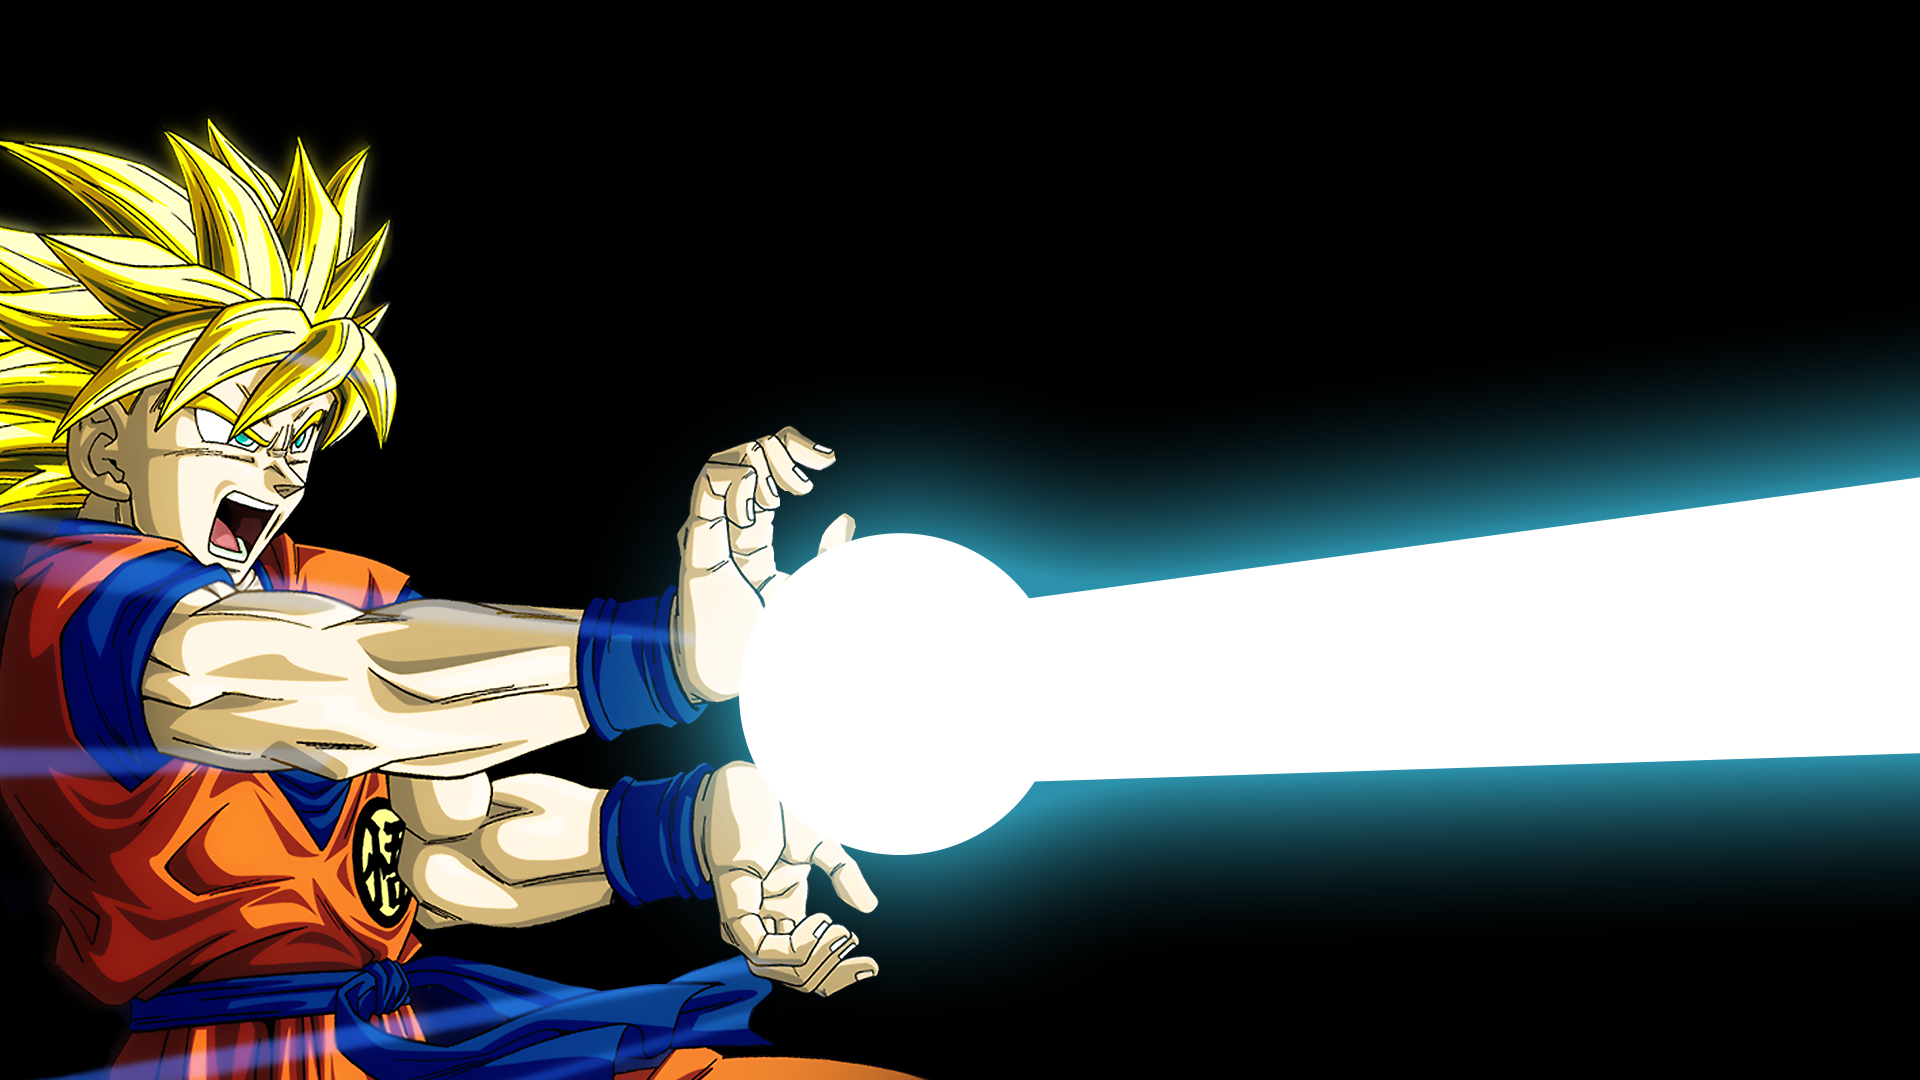 Goku   Dragon Ball Z wallpaper 17927 1920x1080